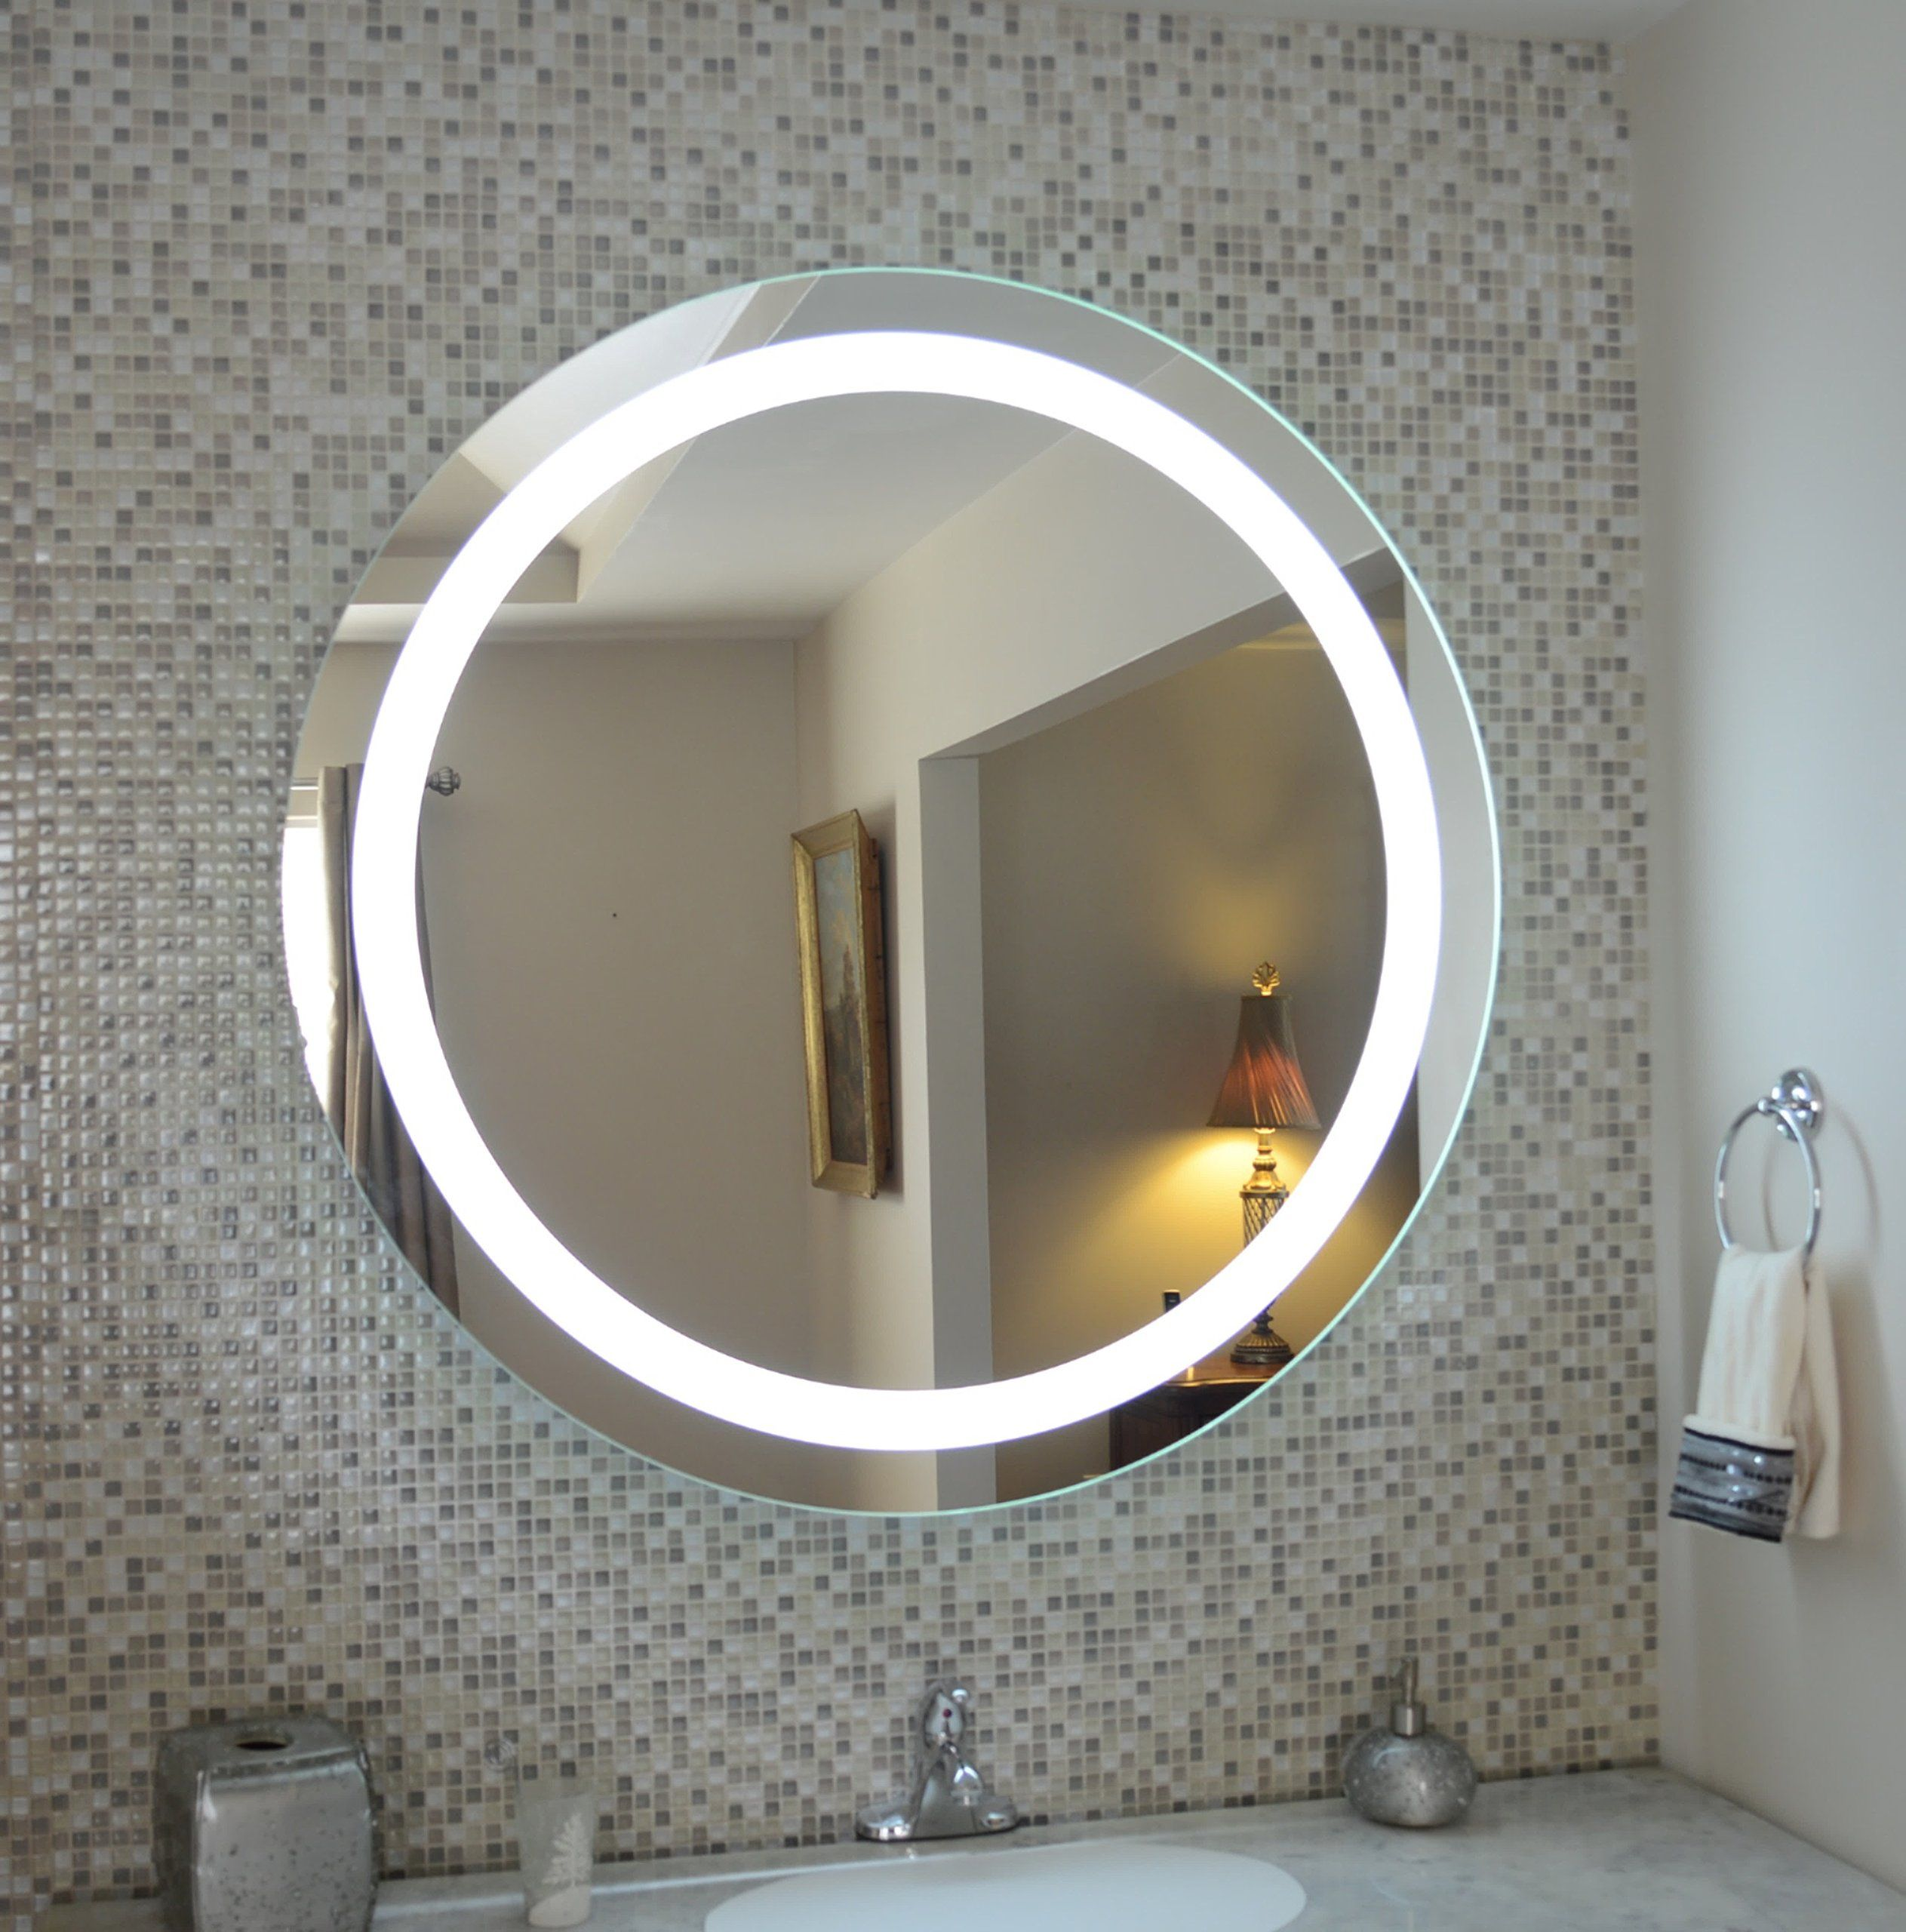 Wall mounted lighted vanity mirror led mam1d40 commercial Bathroom lighted vanity mirrors